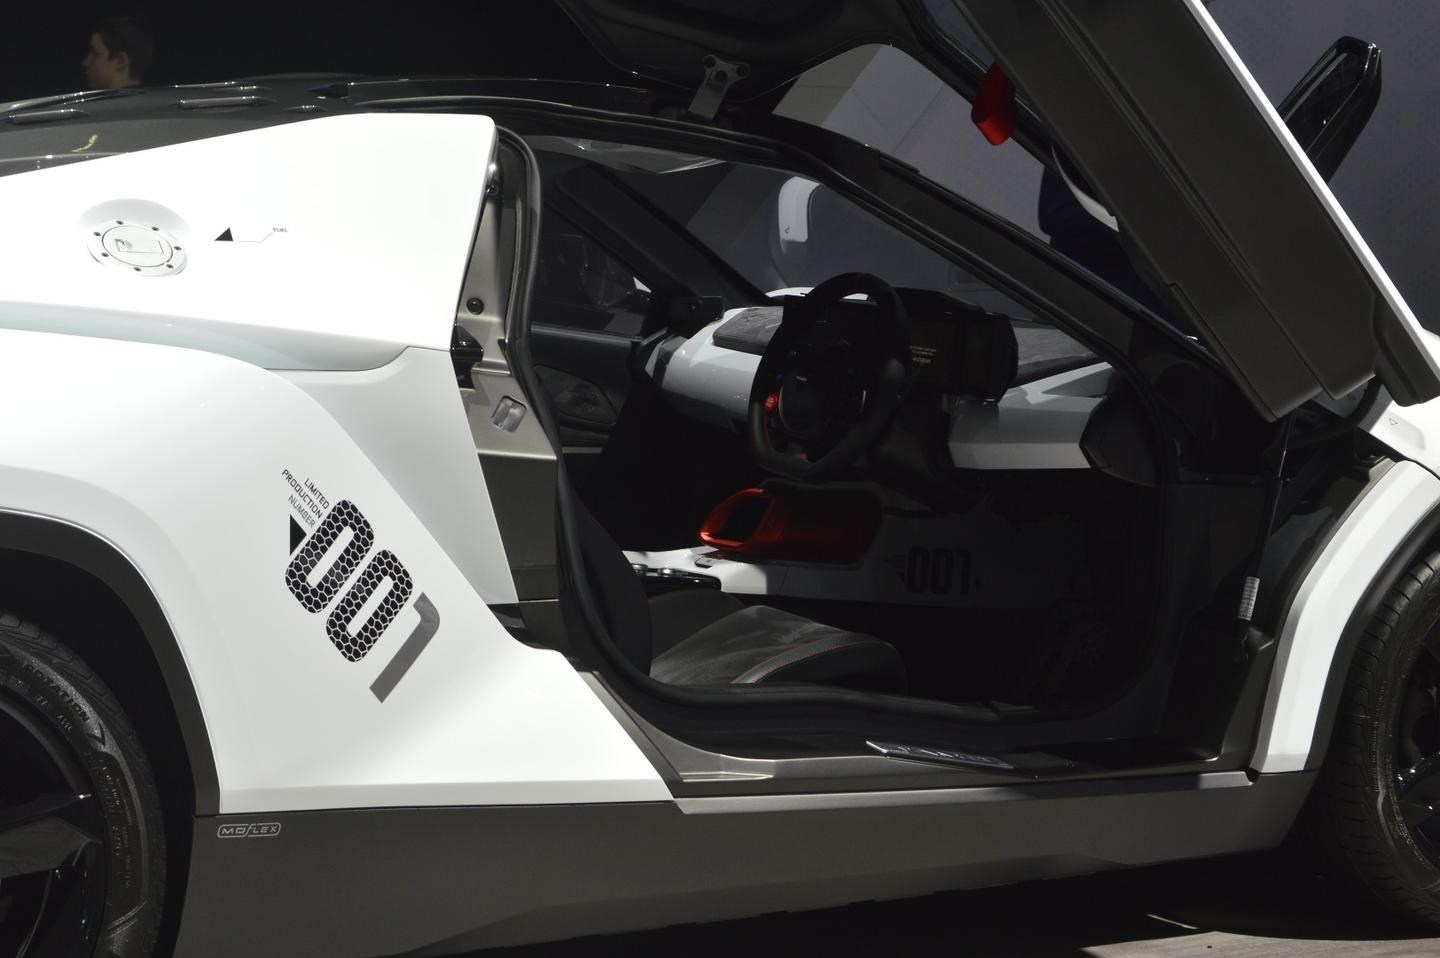 The butterfly doors on the Racemo add a touch of supercar drama